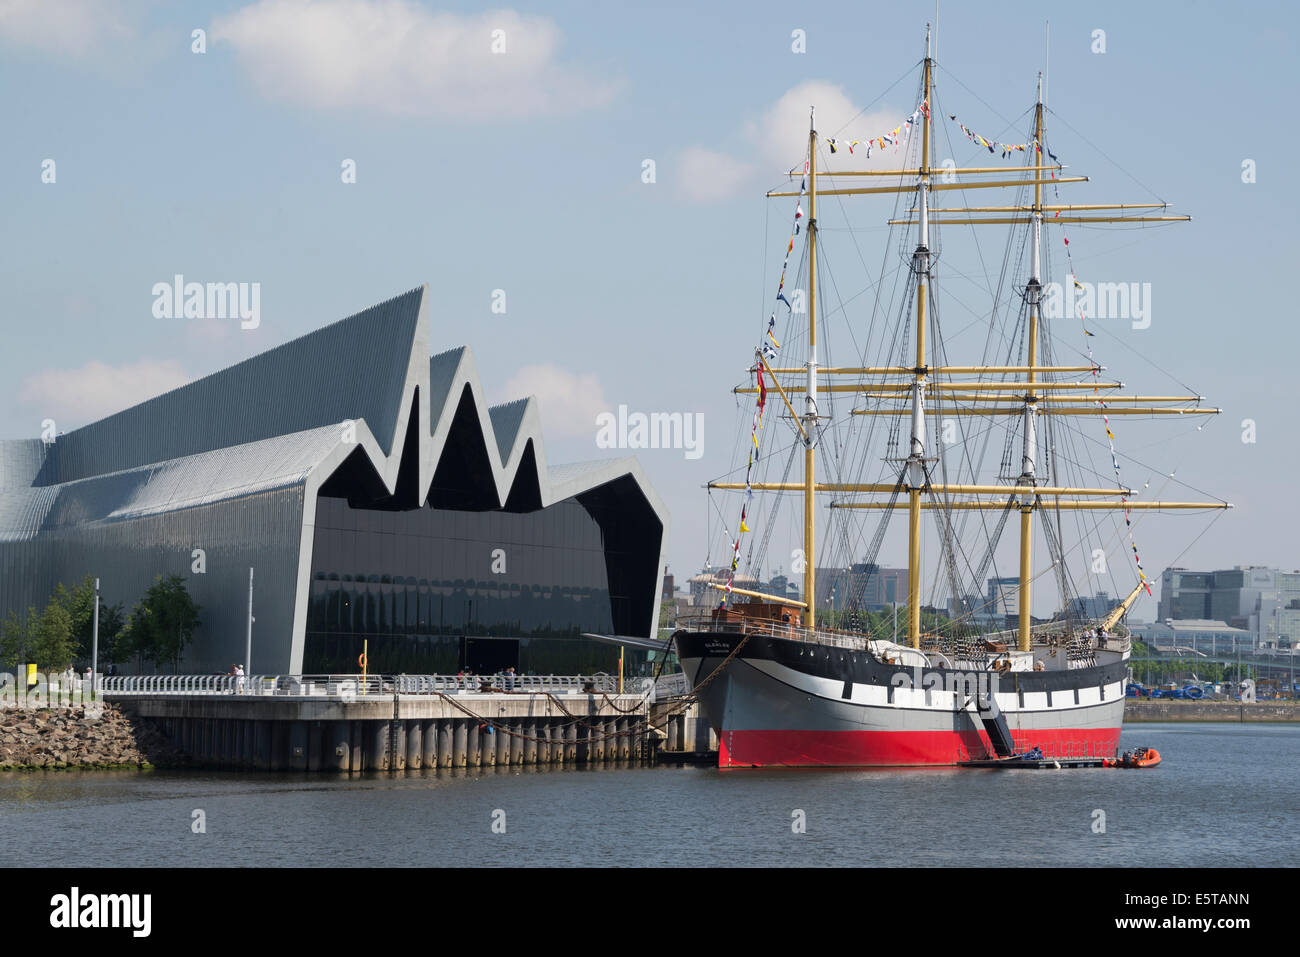 The Riverside Museum of Transport and the Glenlee tall ship on the River Clyde, Glasgow Scotland Stock Photo